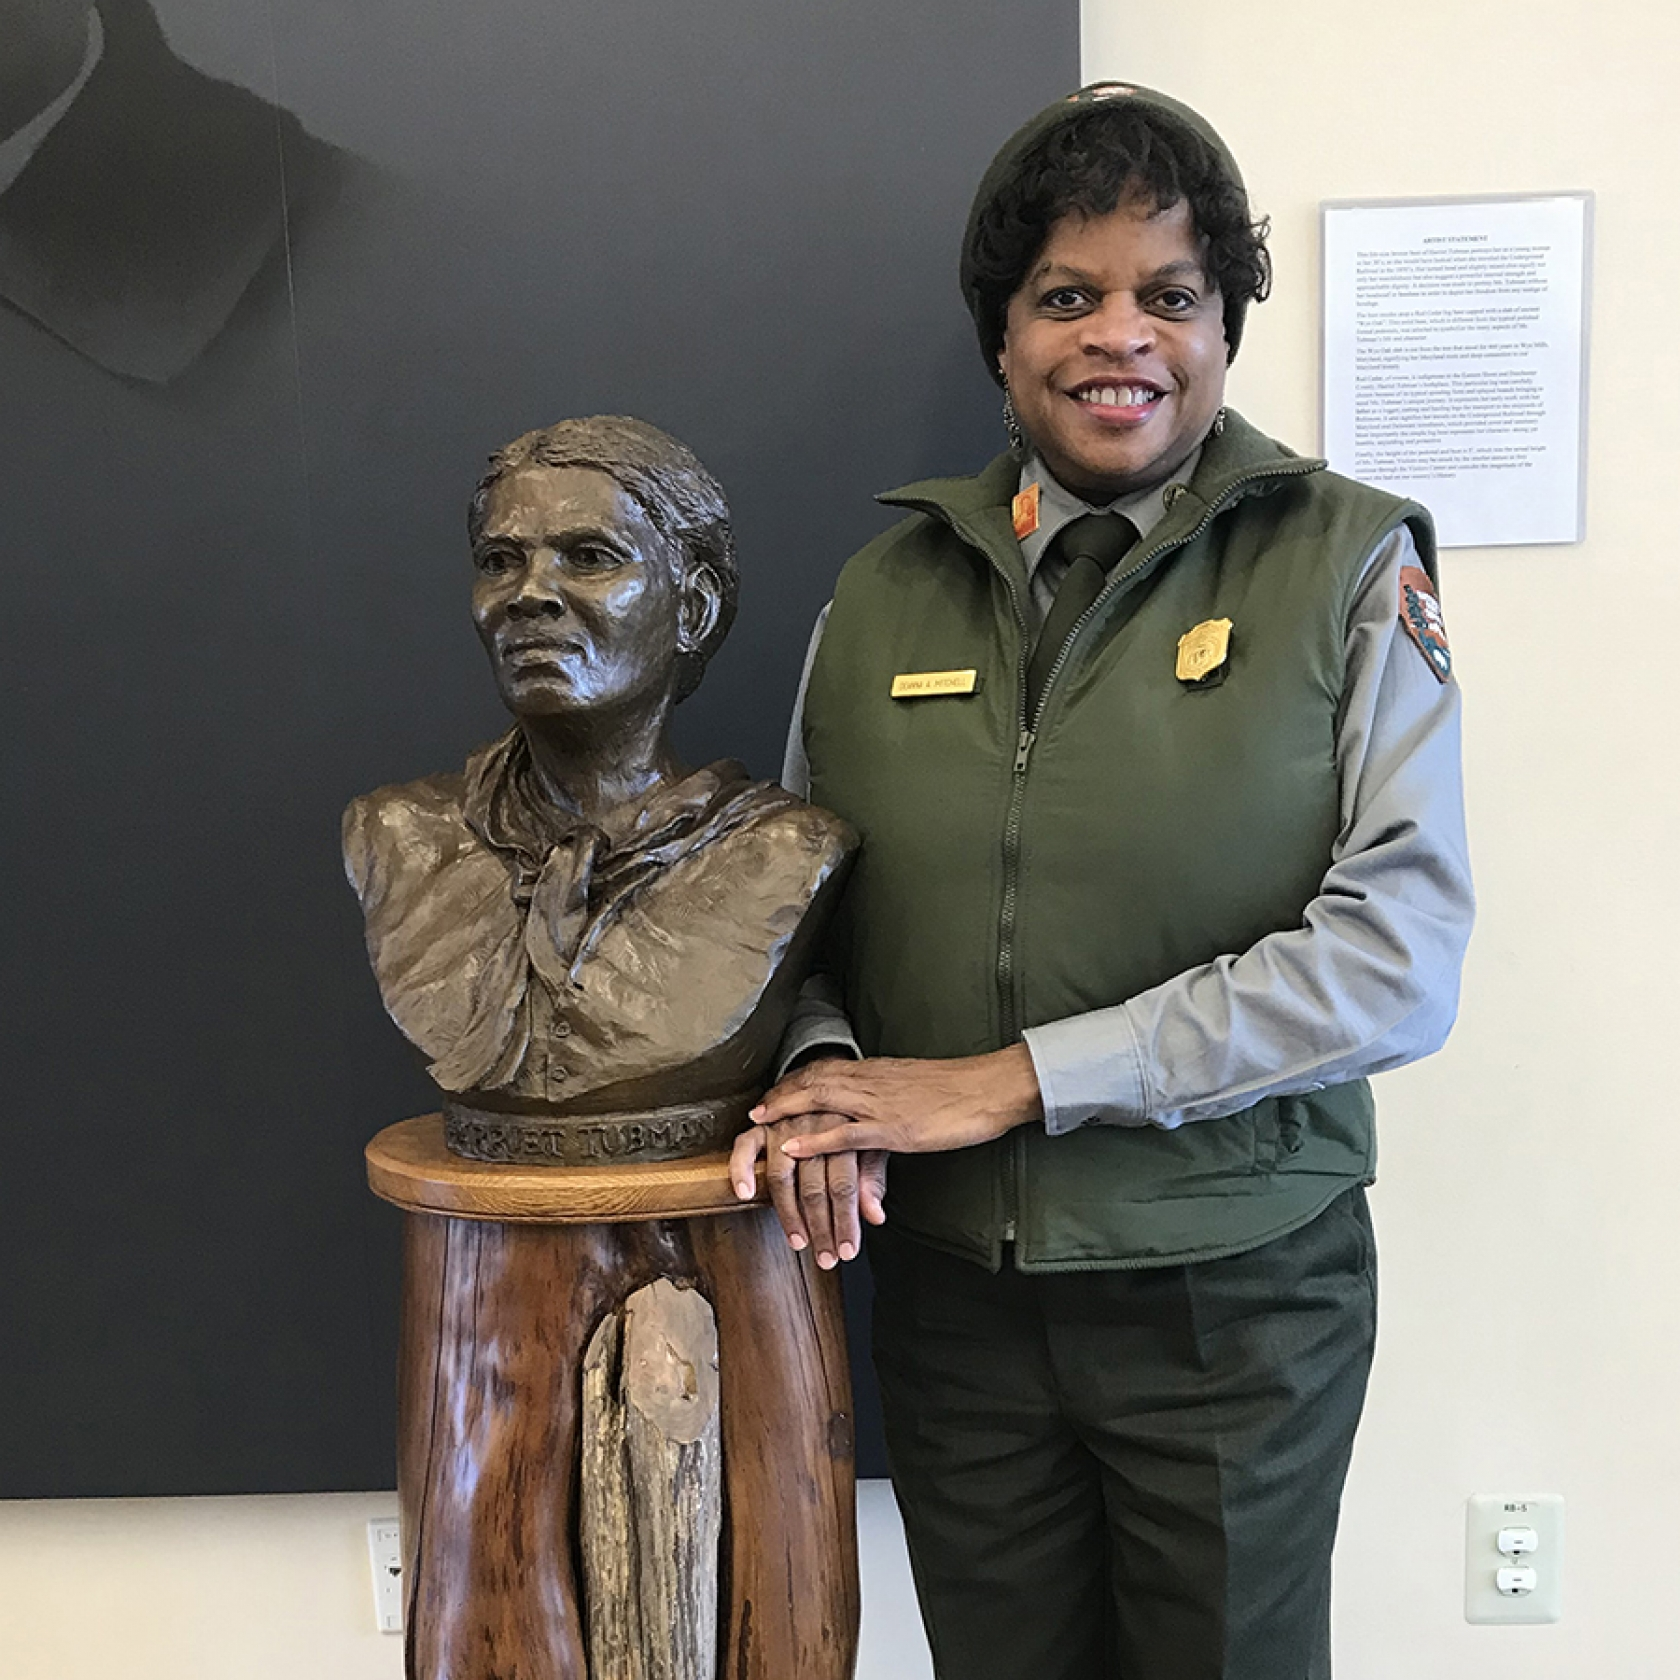 Deanna Mitchell stands next to a bust of Harriet Tubman inside the park's visitor center